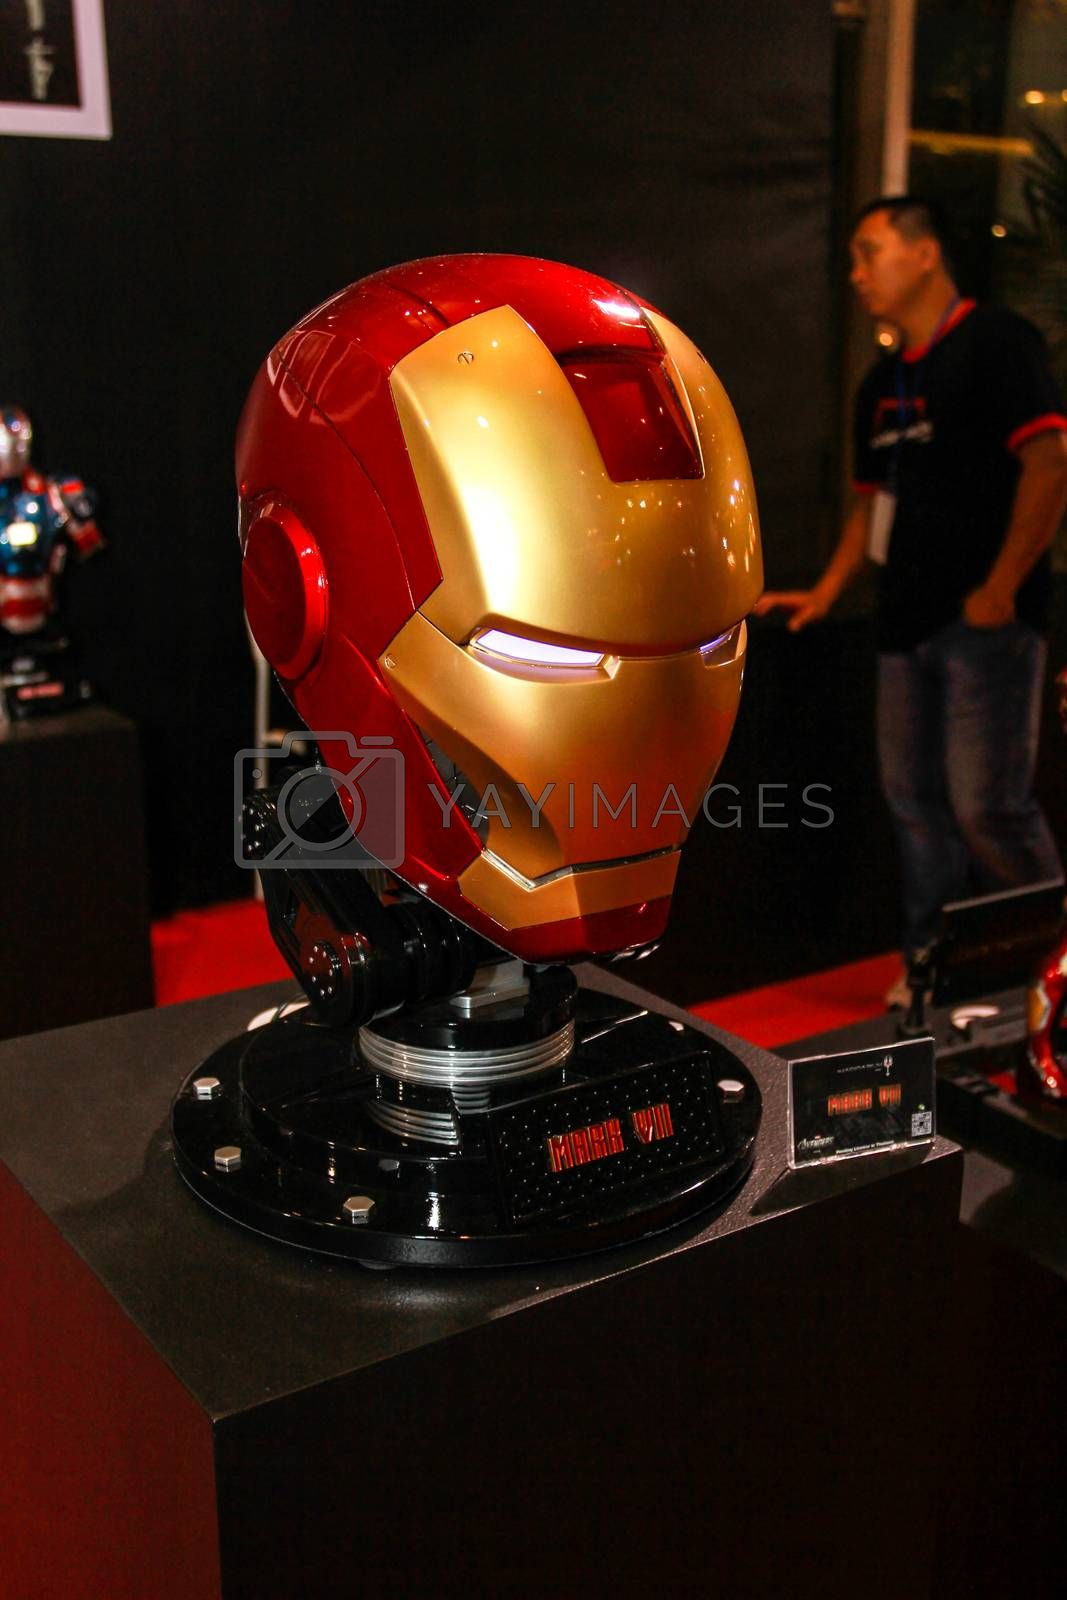 Royalty free image of A model of the Iron Man Mask from the movies and comics by redthirteen